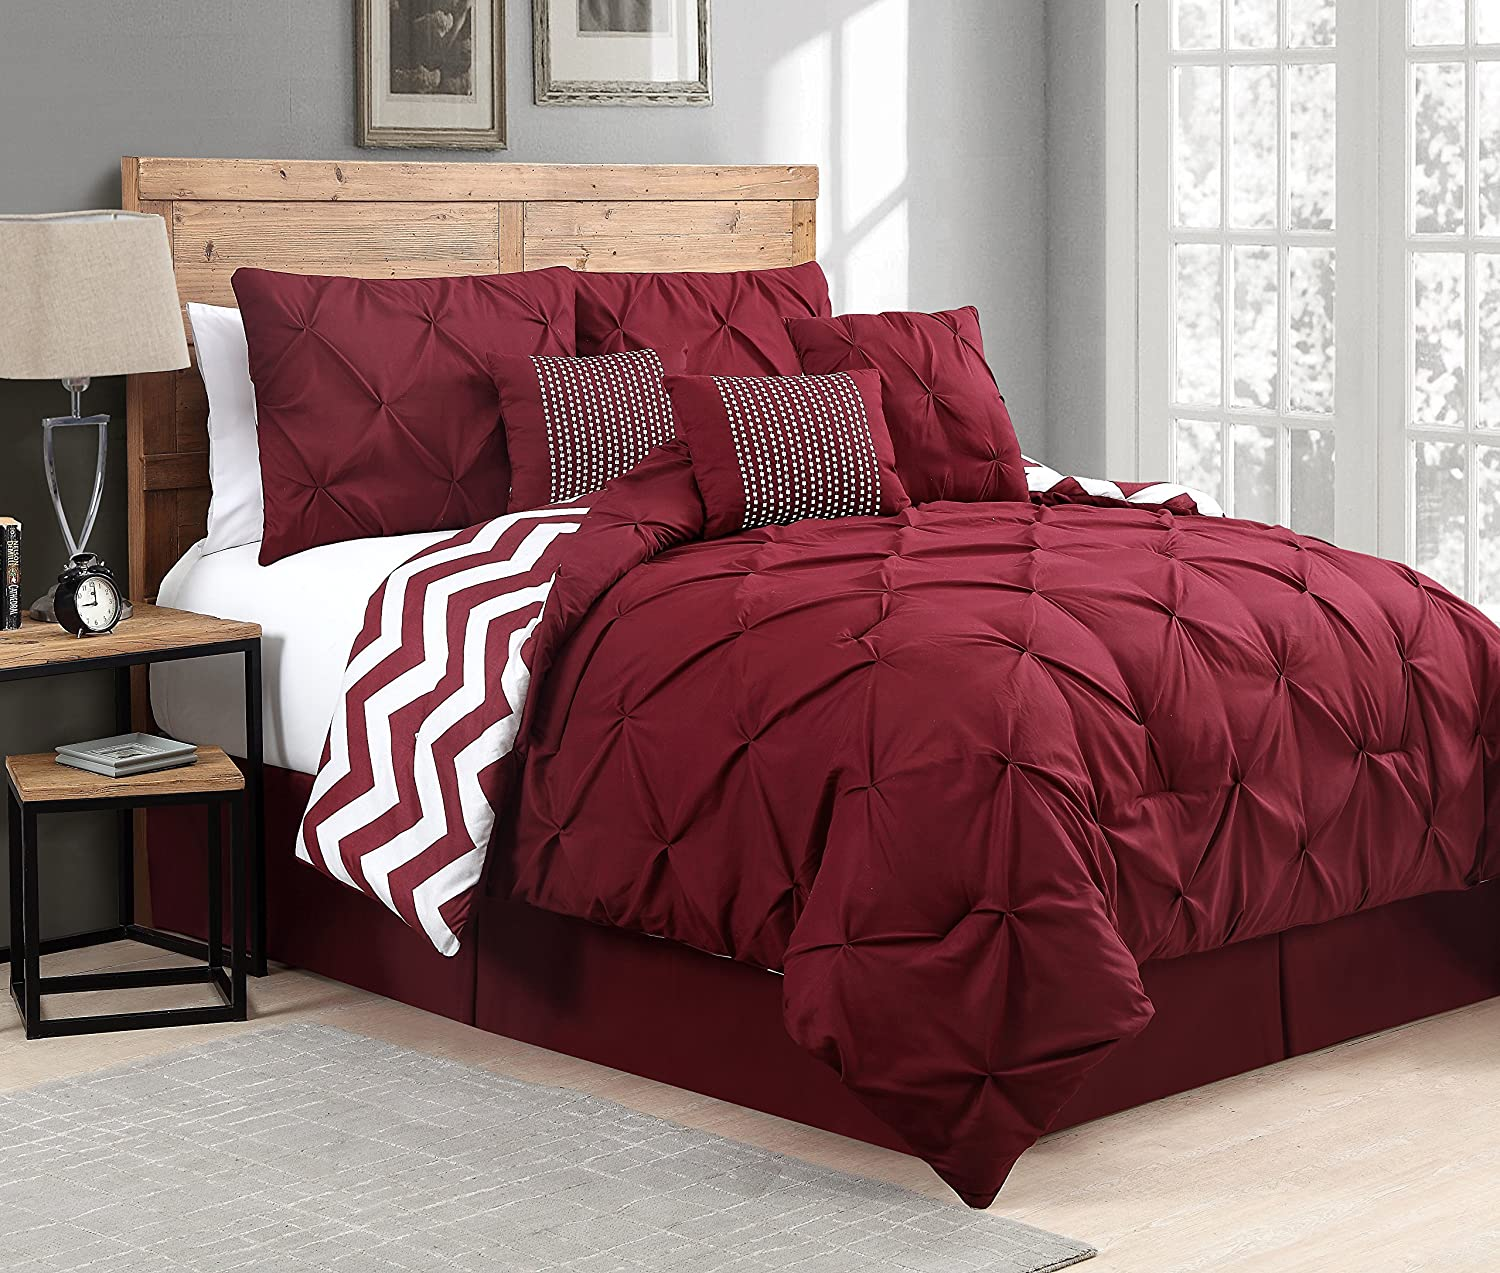 Geneva Home Fashion 7 Piece Venice Pinch Pleat, Queen, Red